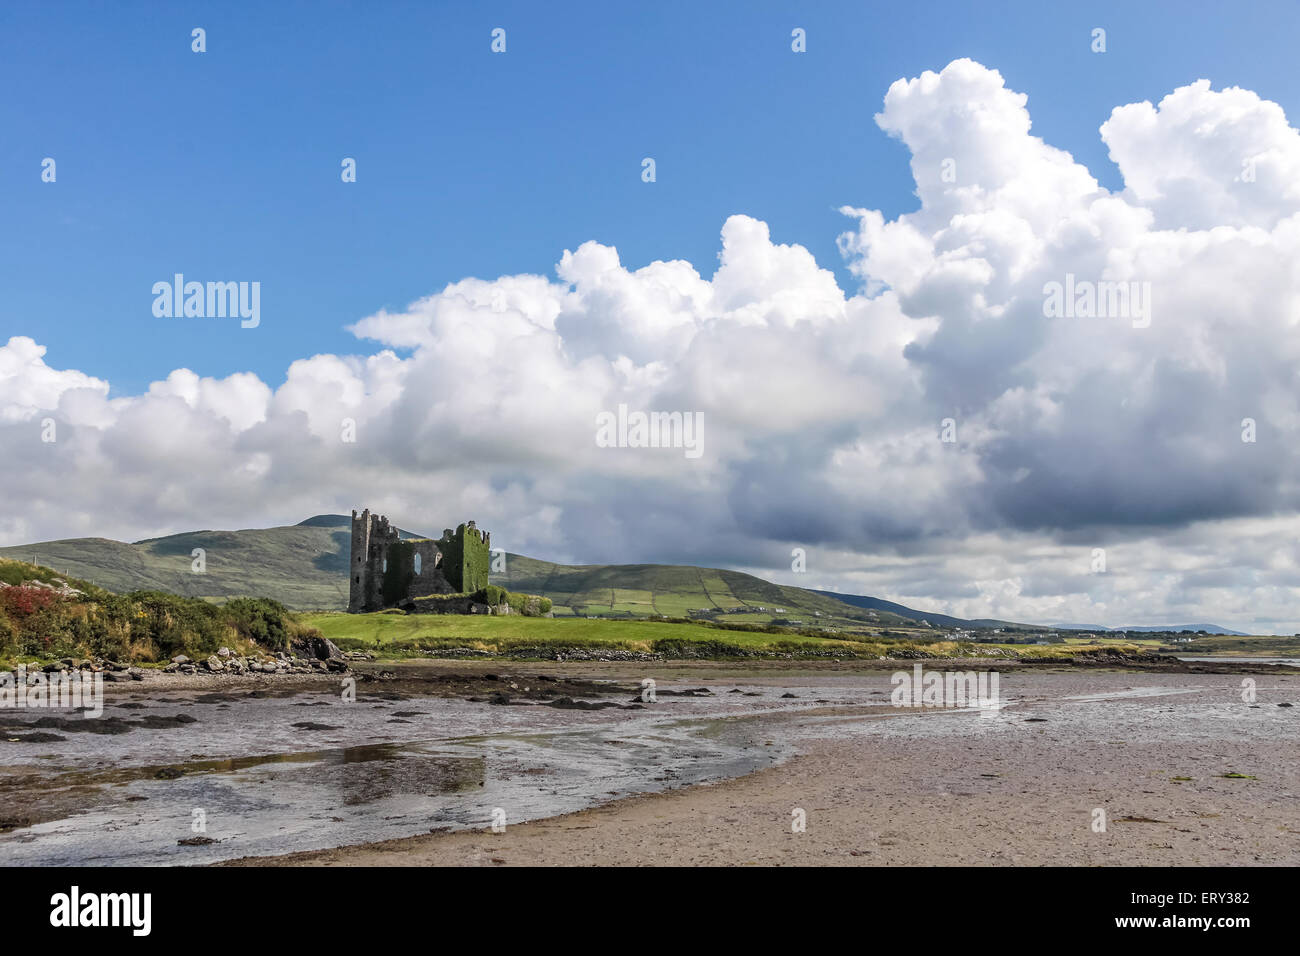 Ballycarbery Castle with giant clouds at the Ring of Kerry in Cahersiveen, County Kerry, Ireland - Stock Image